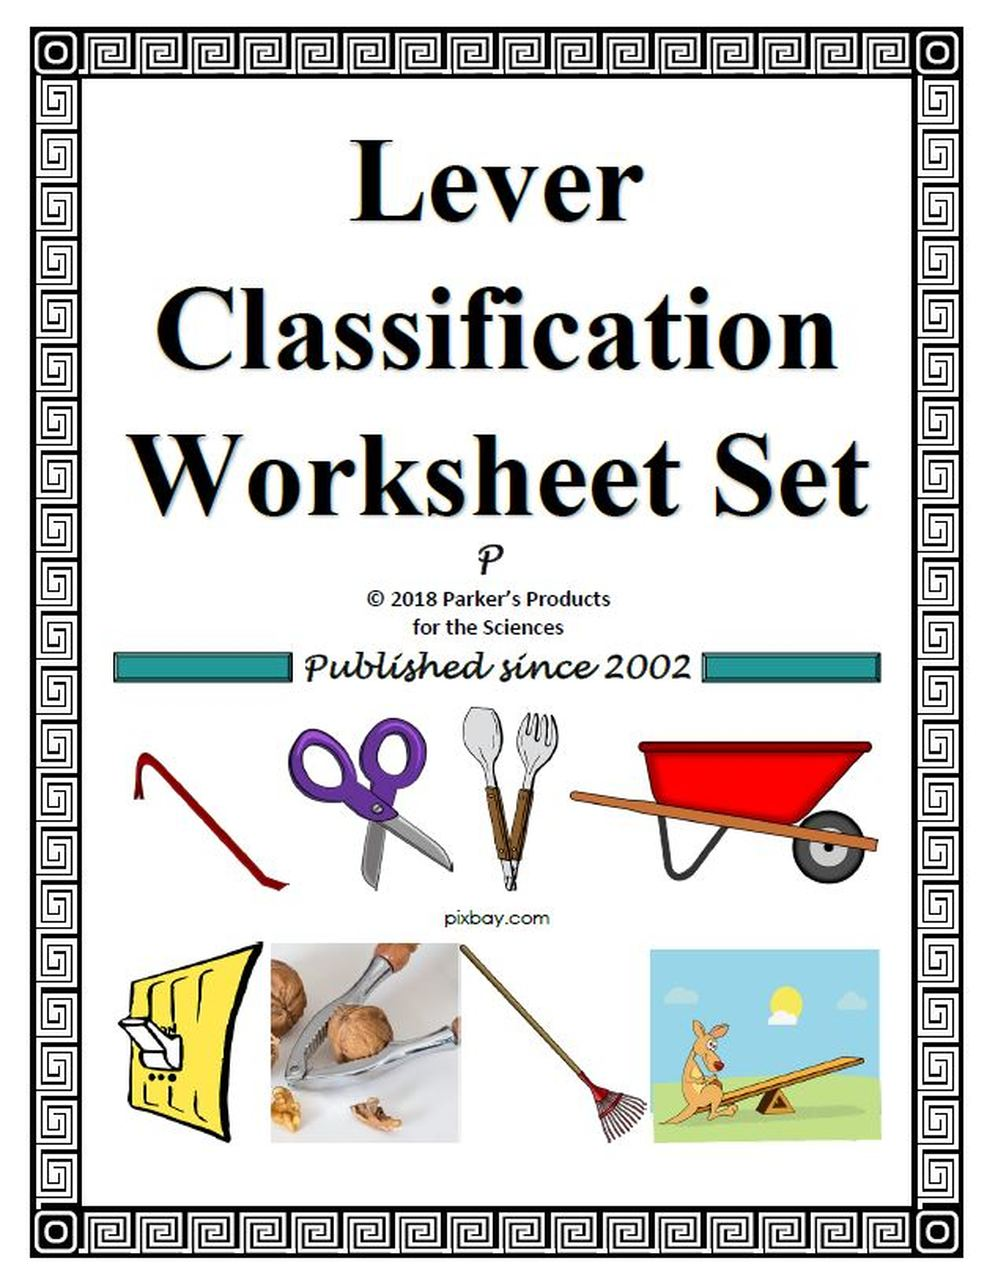 Lever Classification Worksheet Set Science Lessons Physical Science Activities Levers Activities [ 1280 x 987 Pixel ]